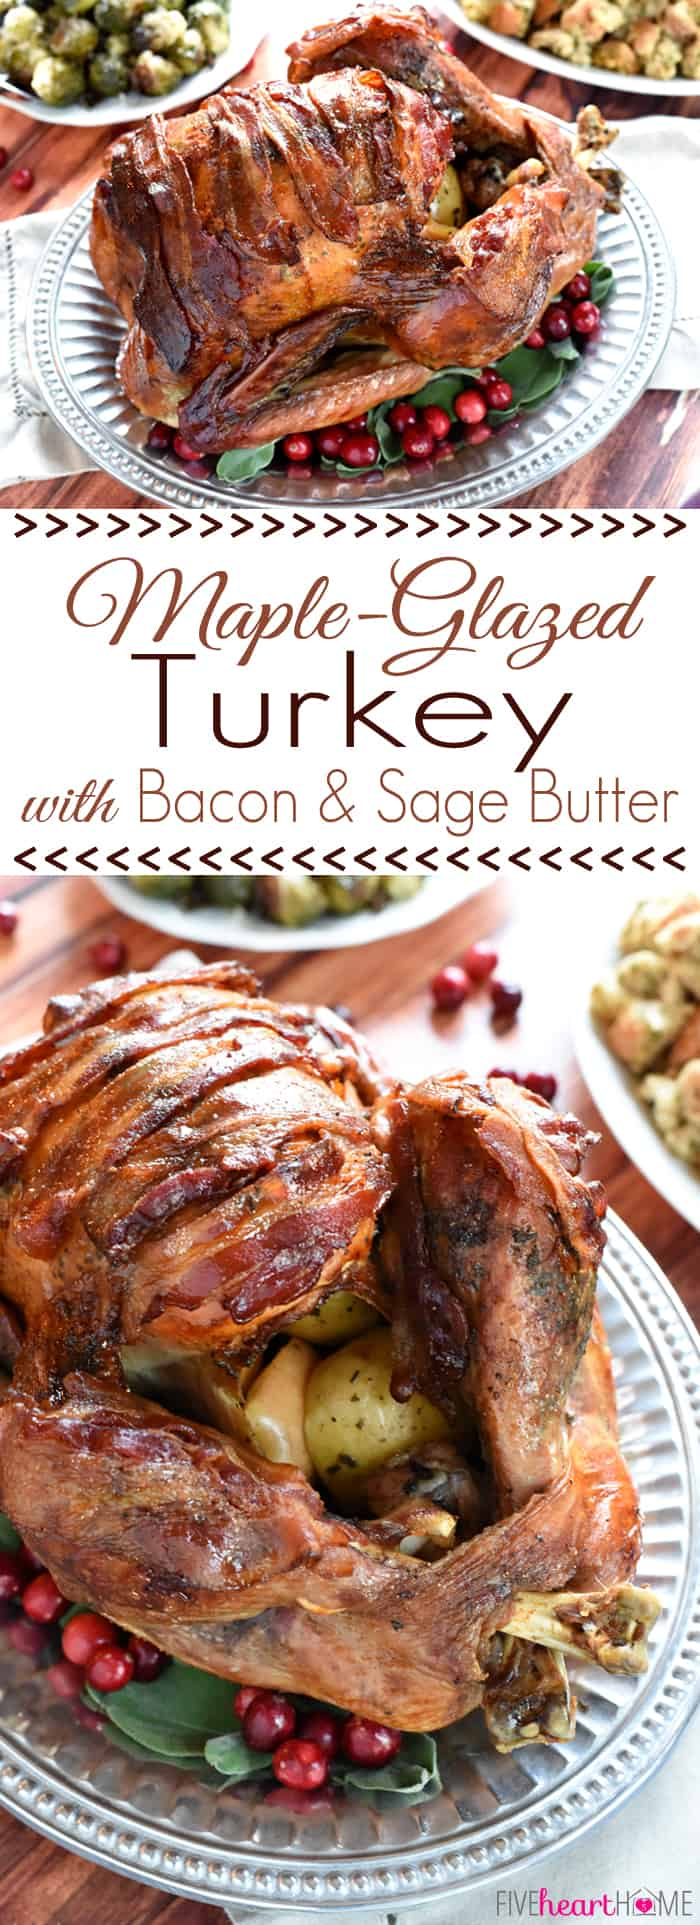 Thanksgiving turkey recipes: Maple-Glazed Turkey with Bacon and Sage Butter